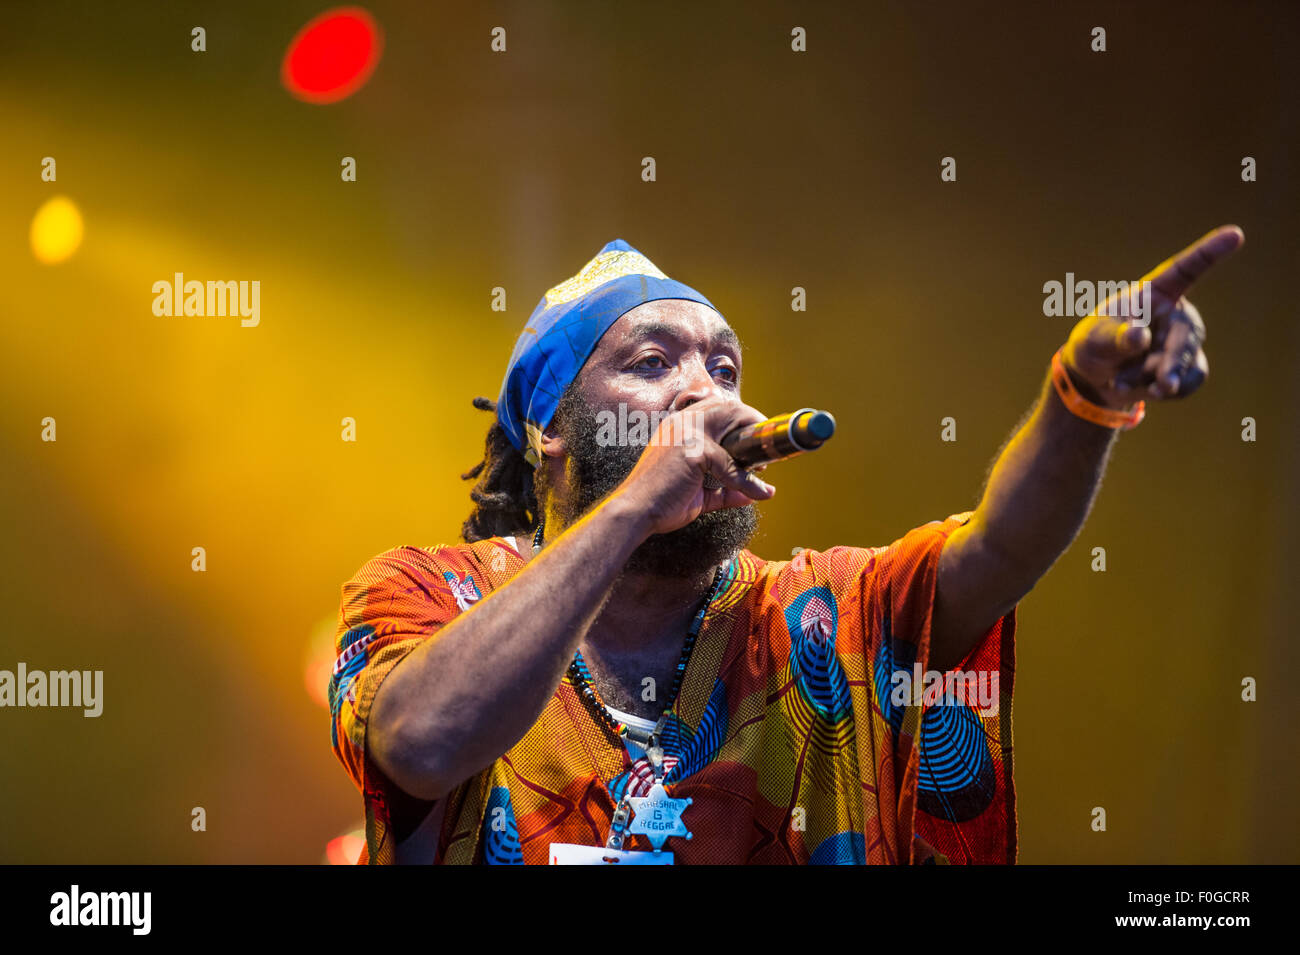 MONTREAL, CANADA, 14th August 2015. Mello G performs live at the Montreal International Reggae Festival. Credit: - Stock Image